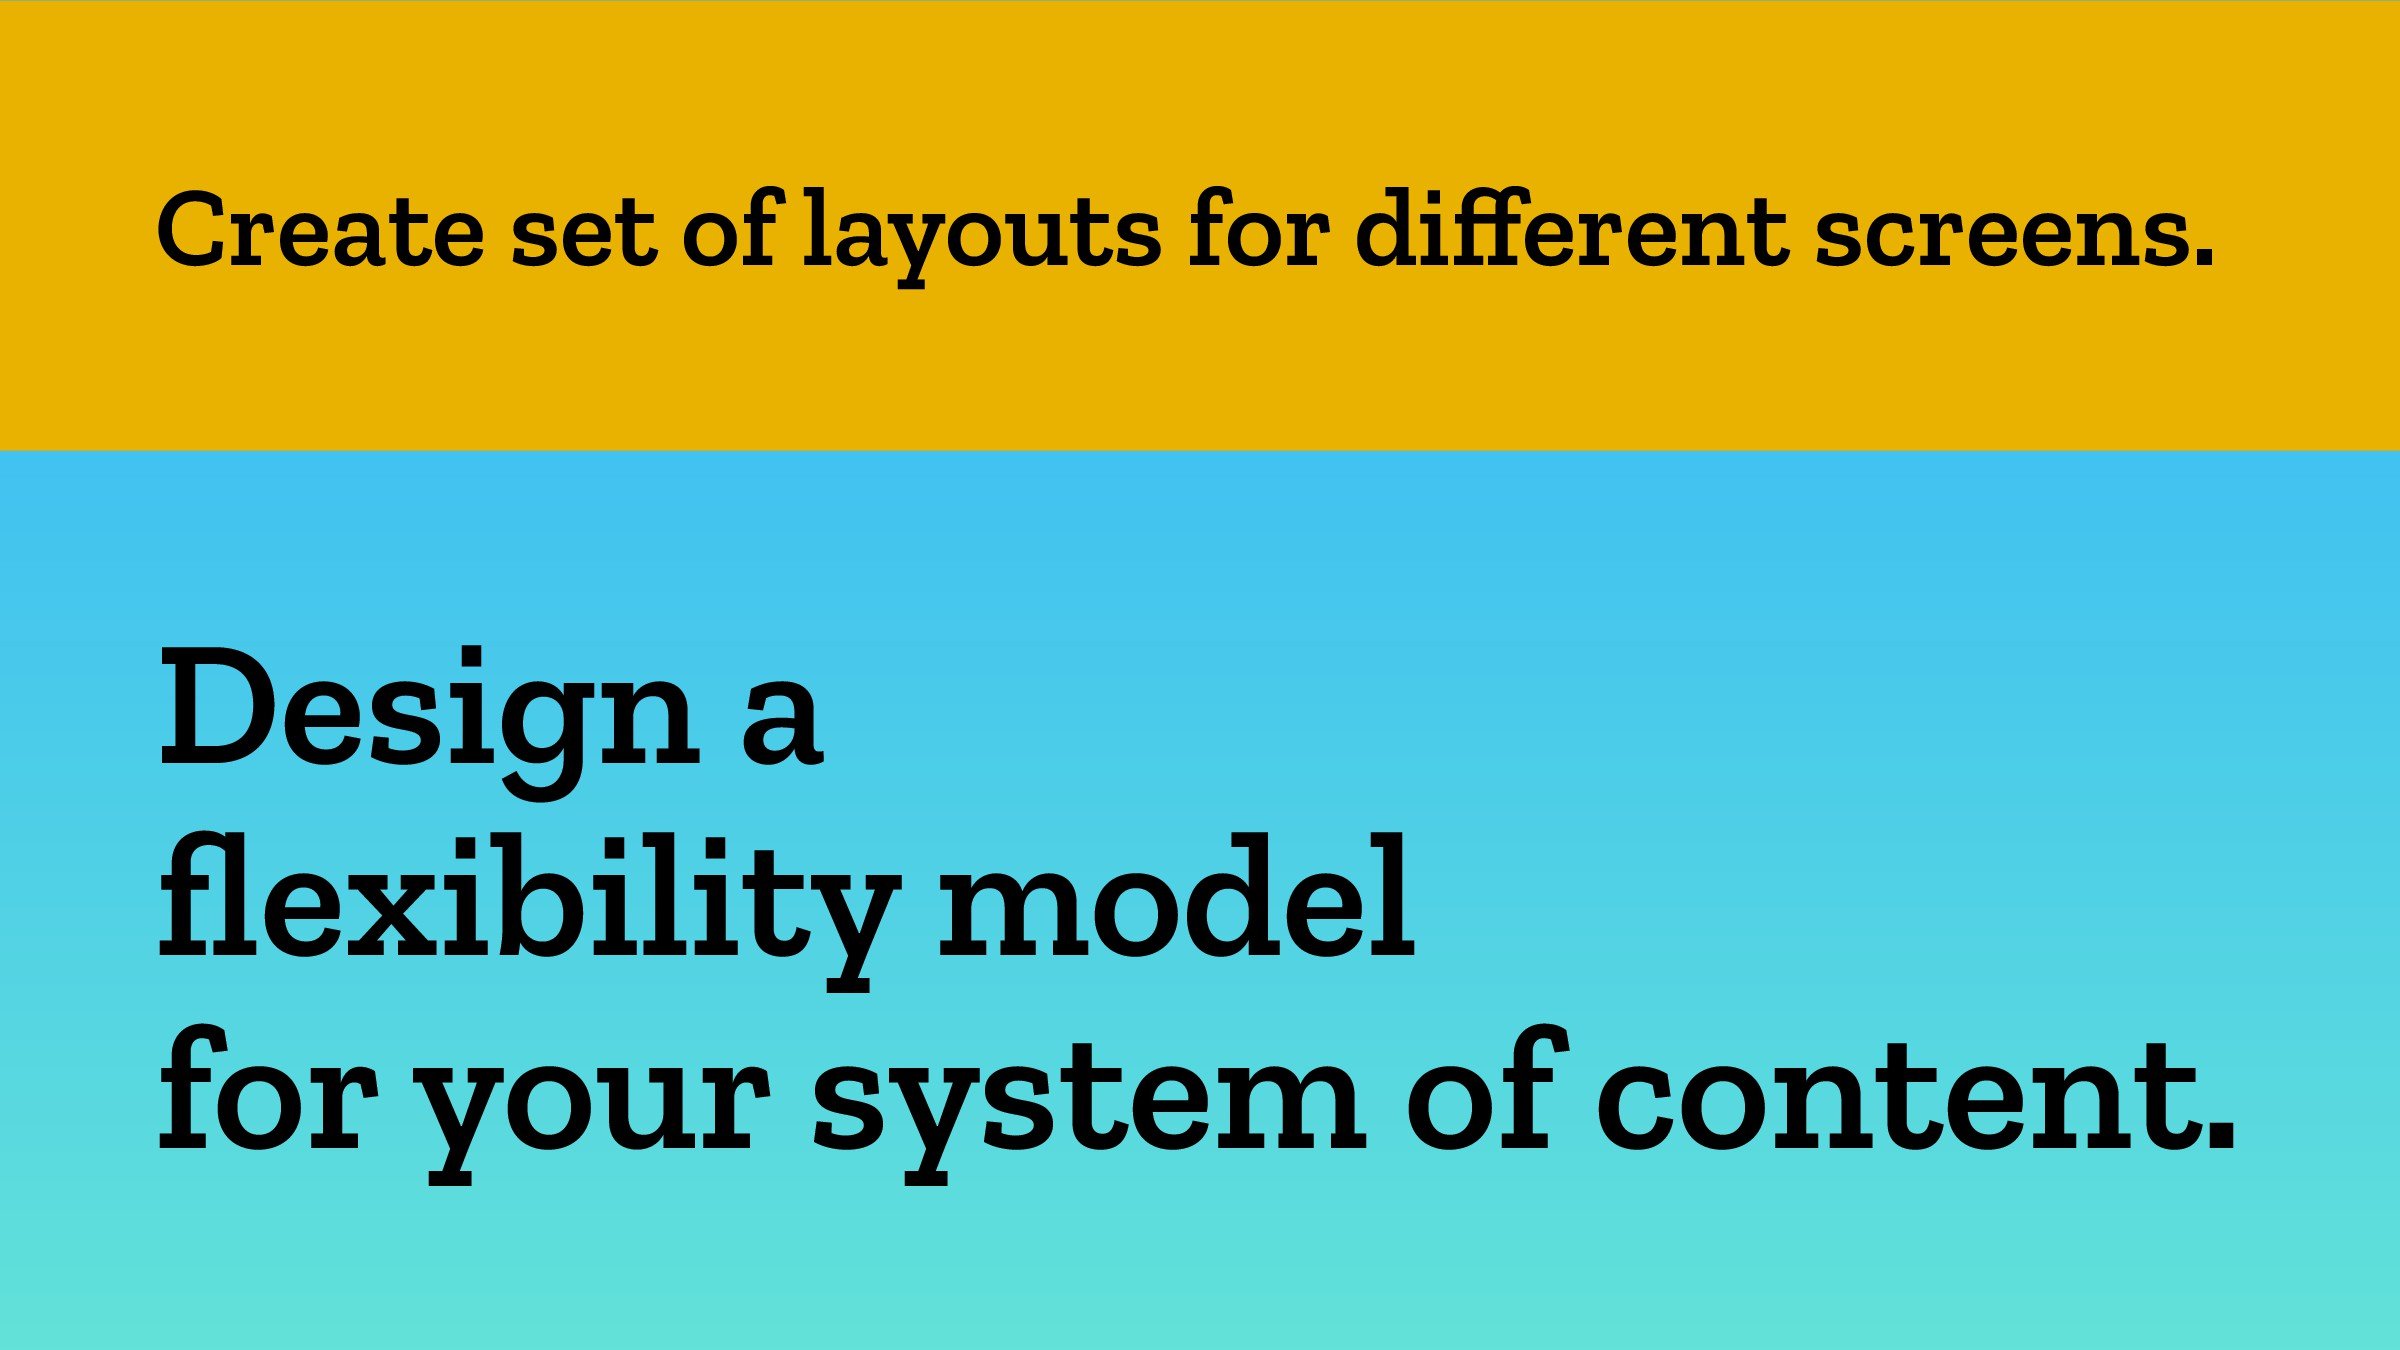 Create set of layouts for different screens. Des...